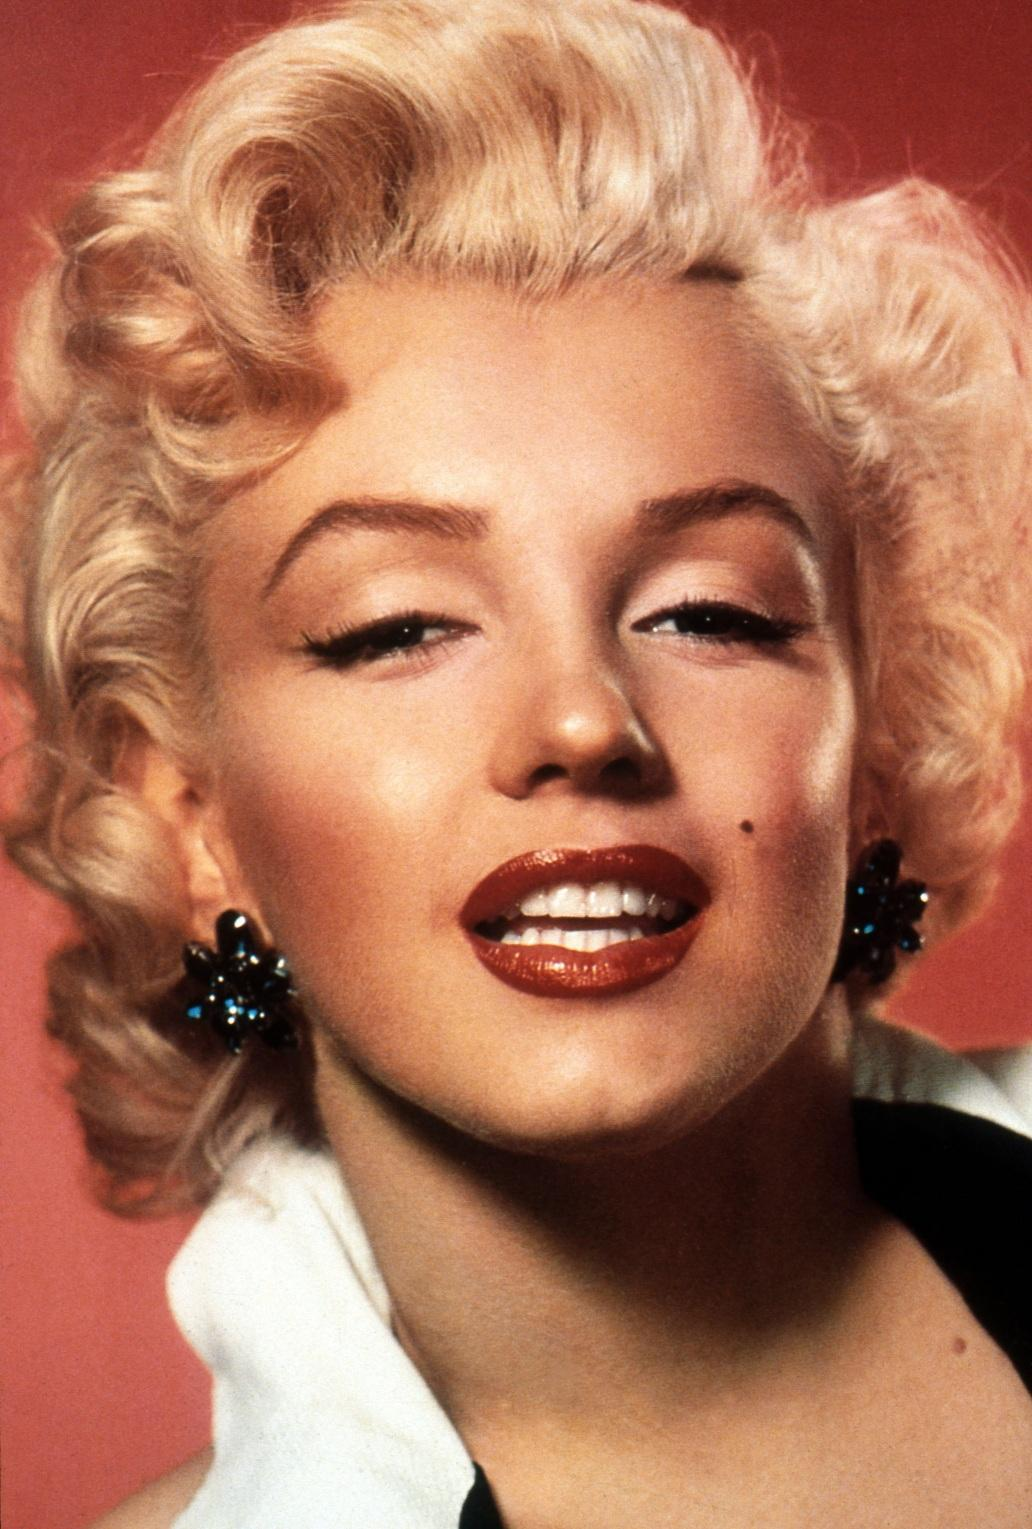 Marilyn Monroe Living Room Decor: Why Are We Still In Love With Marilyn Monroe?